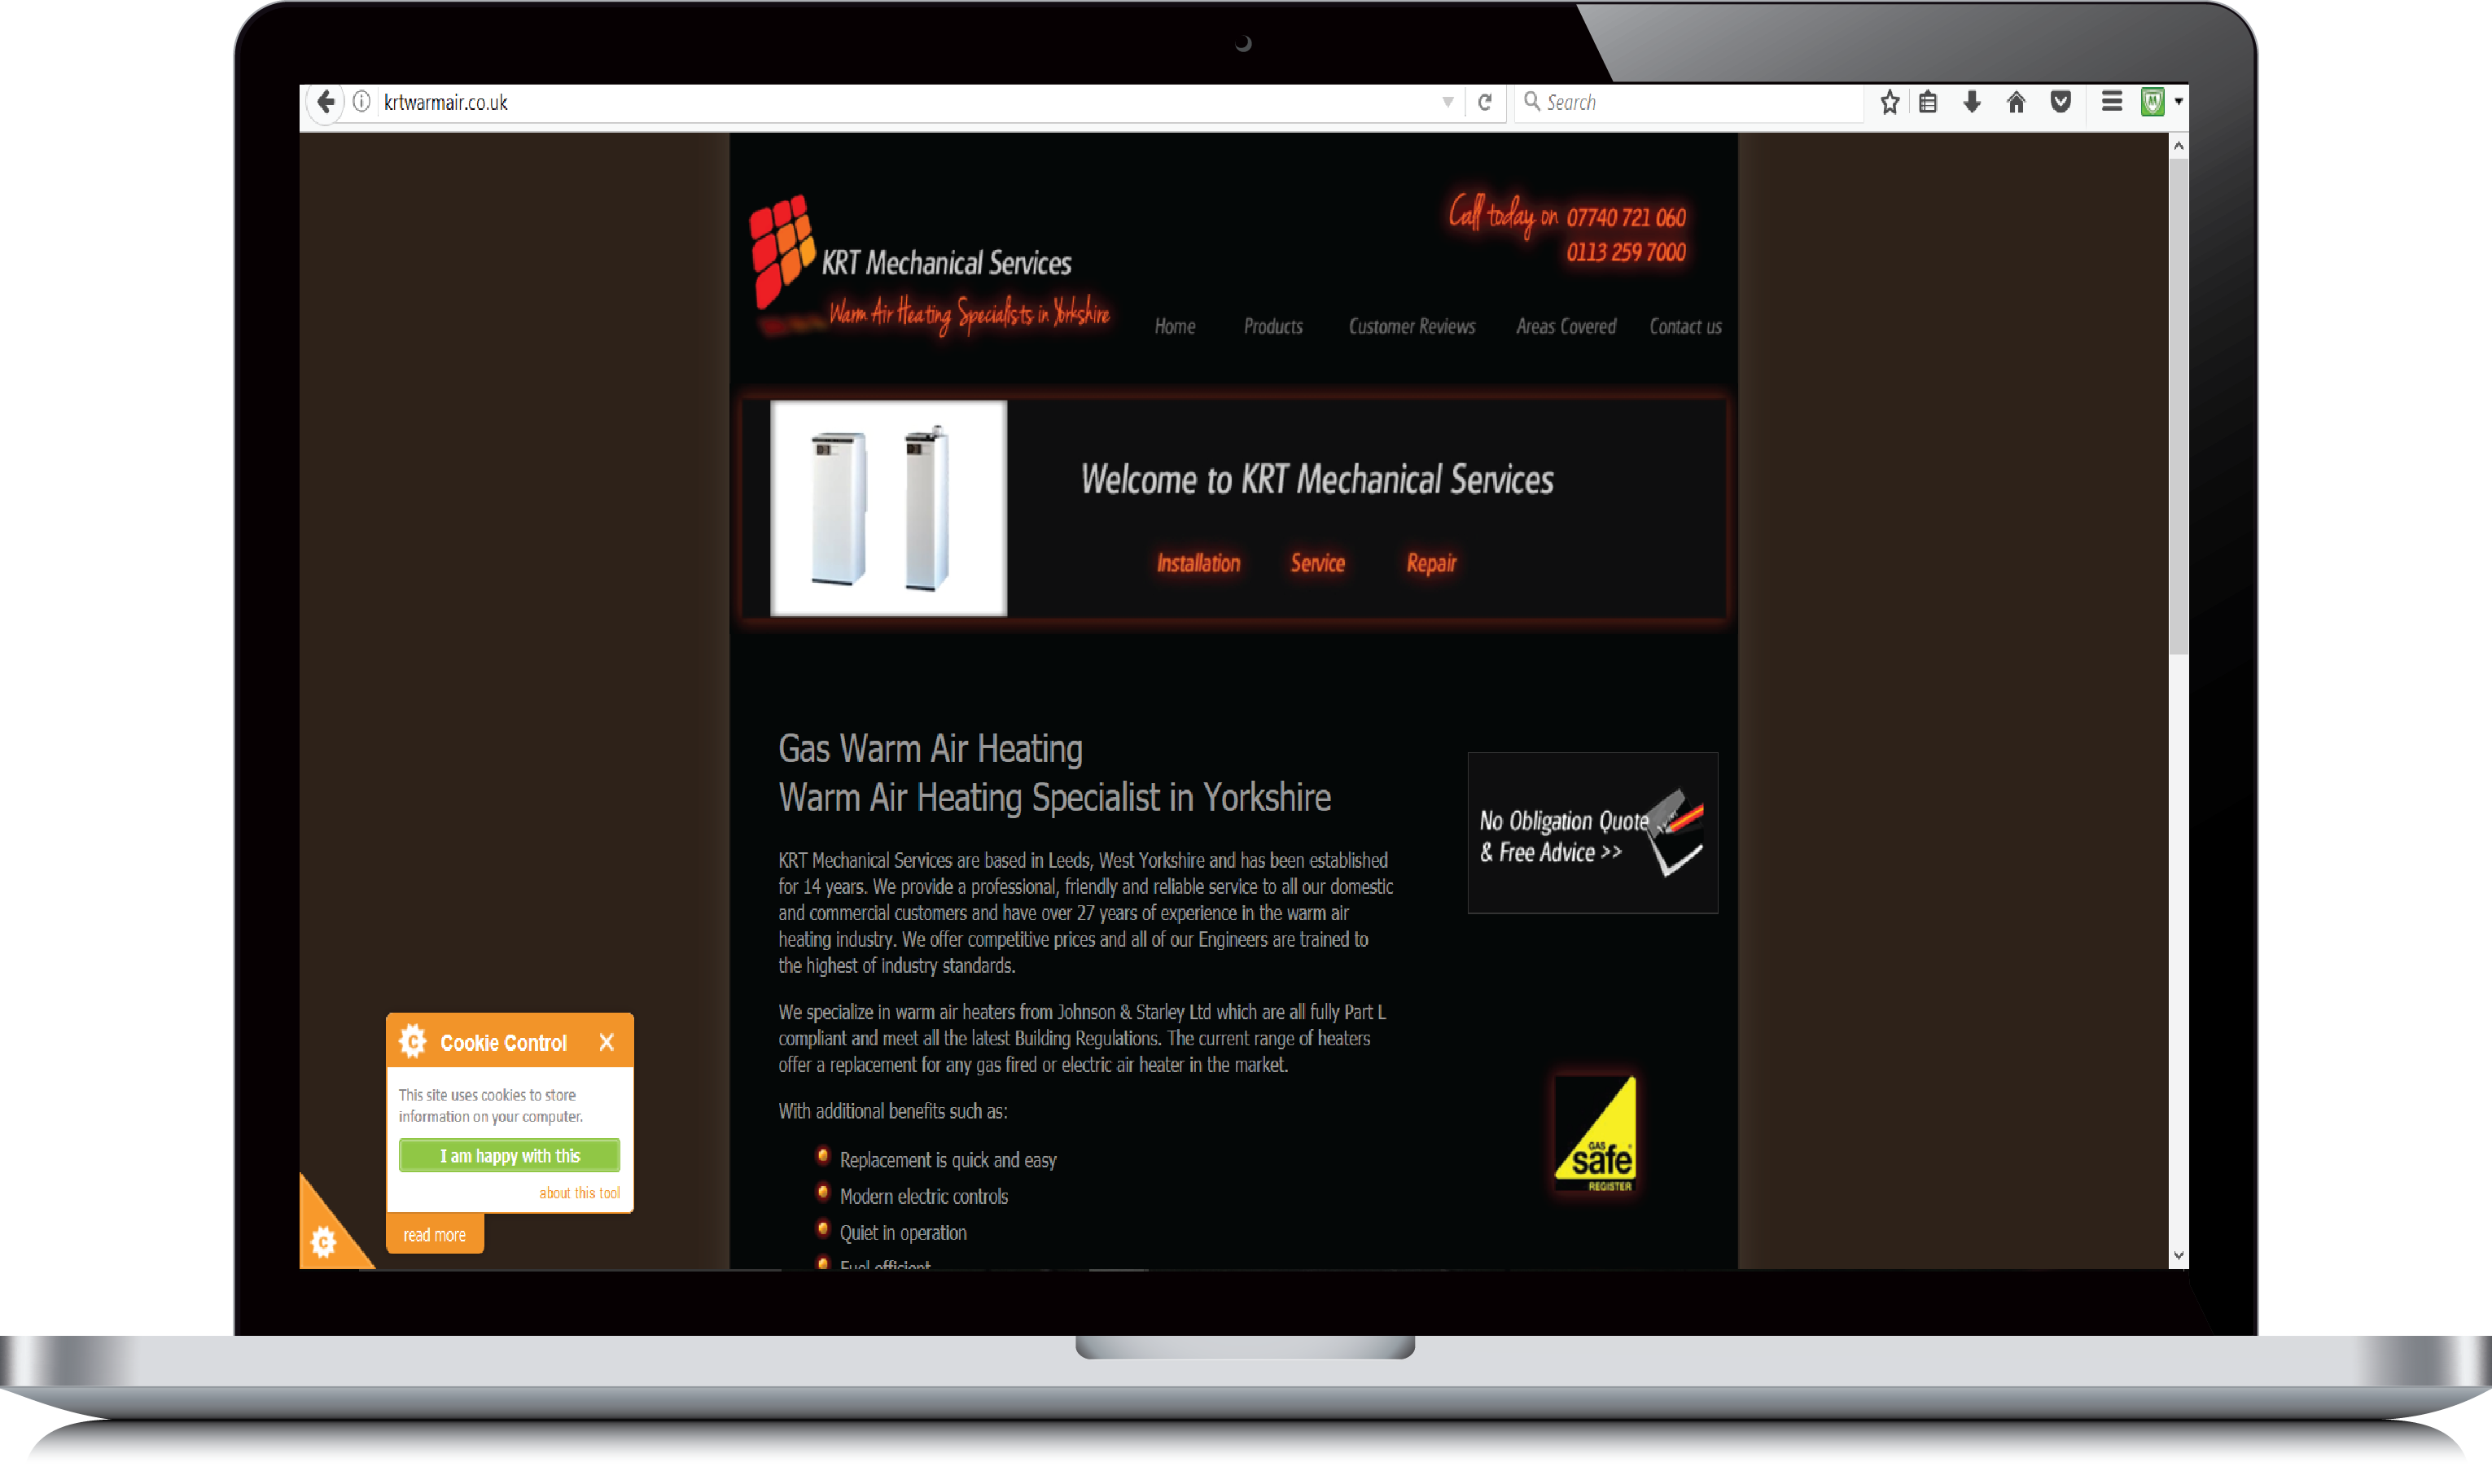 KRT Mechanical Services website example view